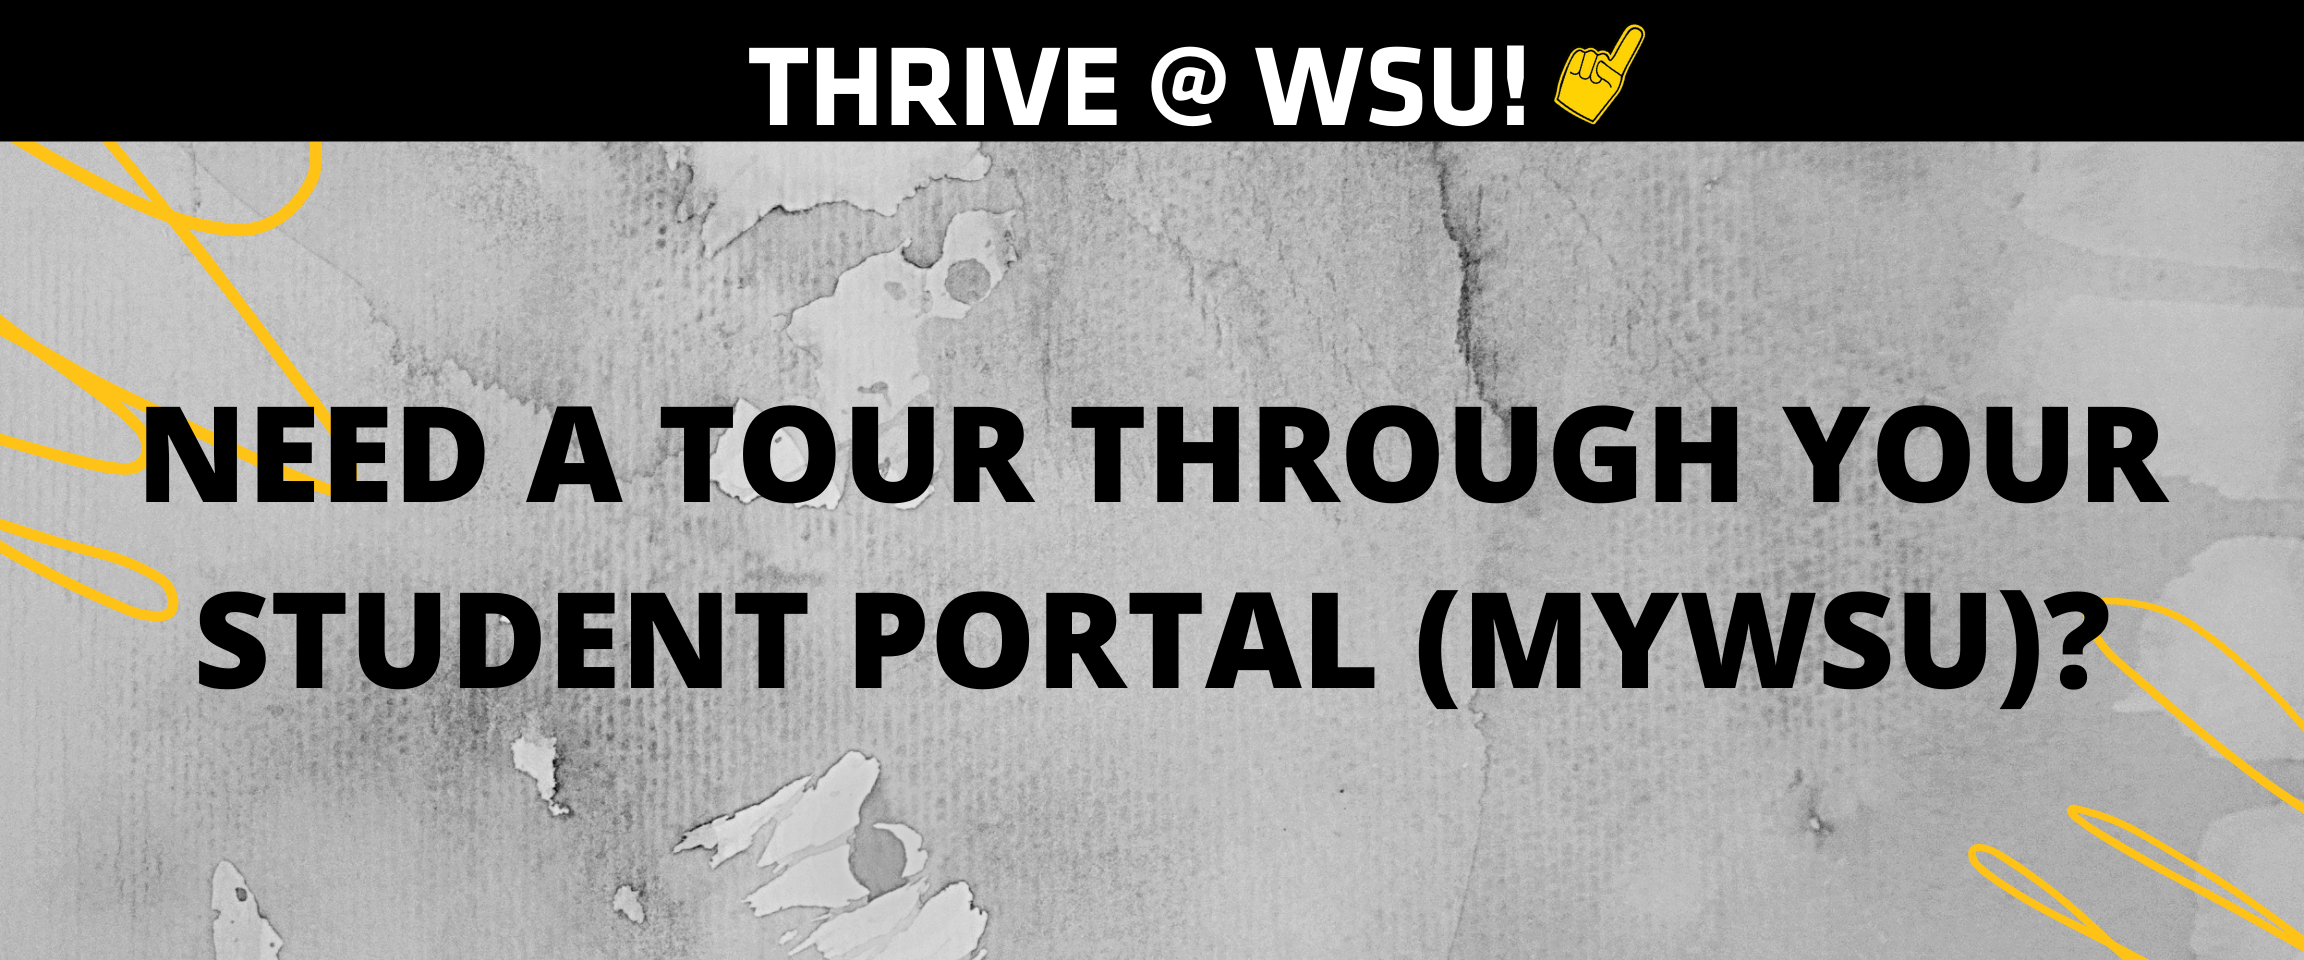 """Graphic featuring text """"NEED A TOUR THROUGH YOUR STUDENT PORTAL (MYWSU)?"""""""